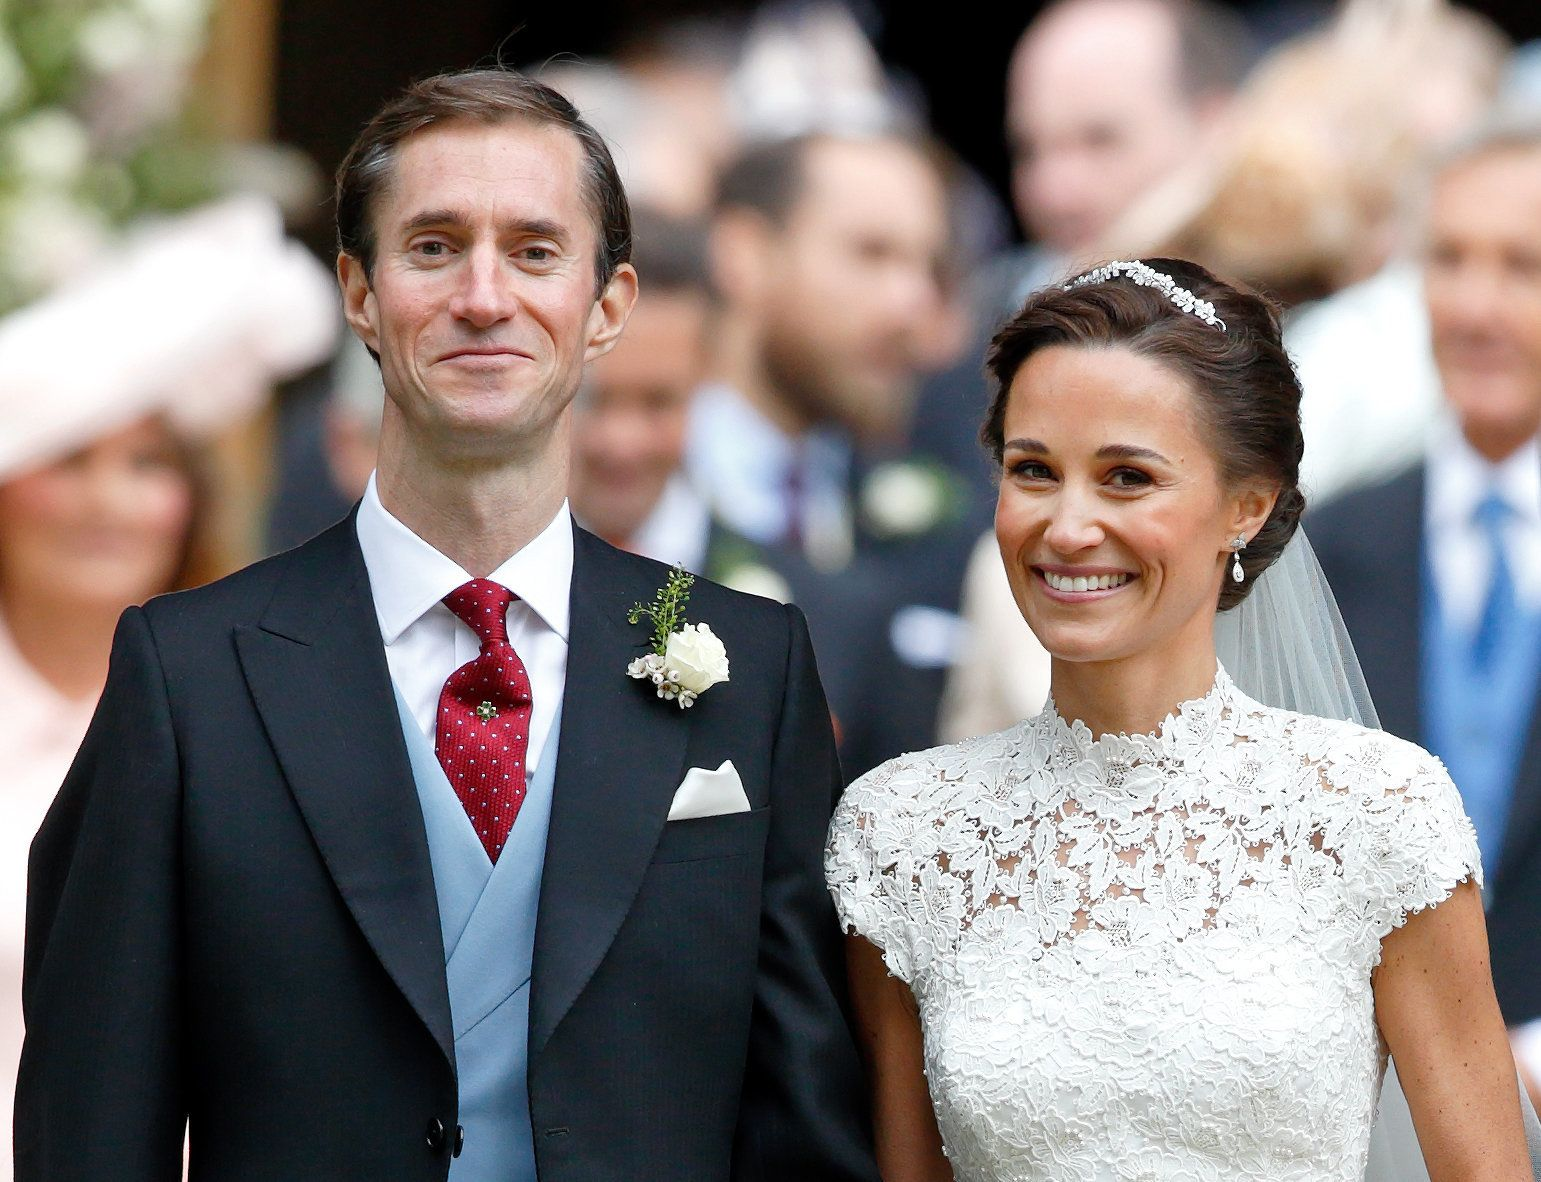 Pippa Middleton Gives Birth To Baby